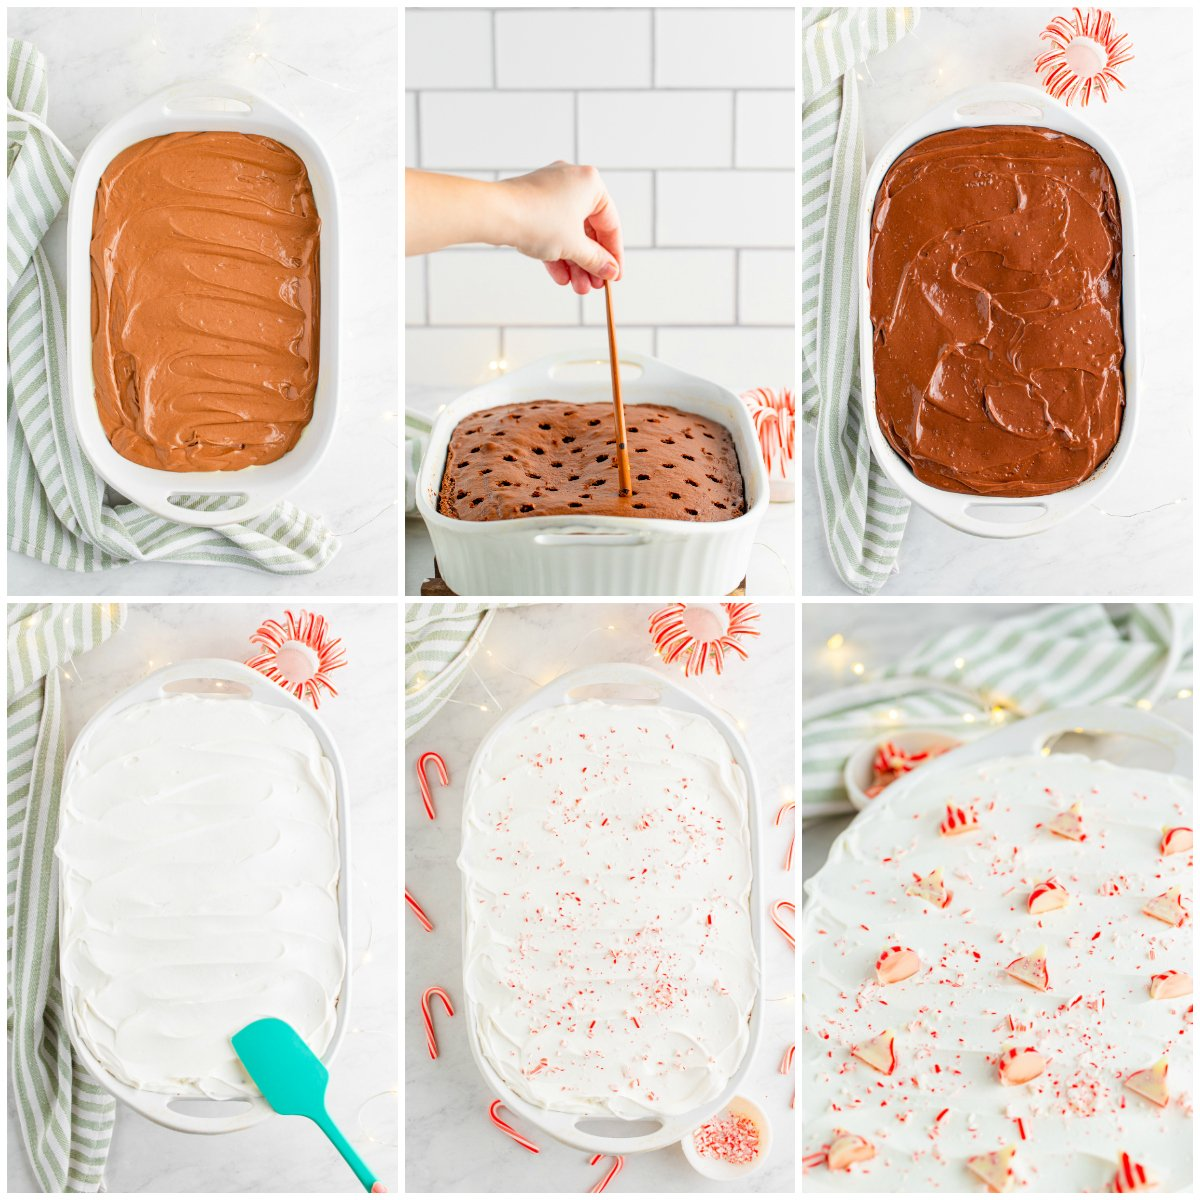 Step by step photos on how to make Chocolate Peppermint Cake